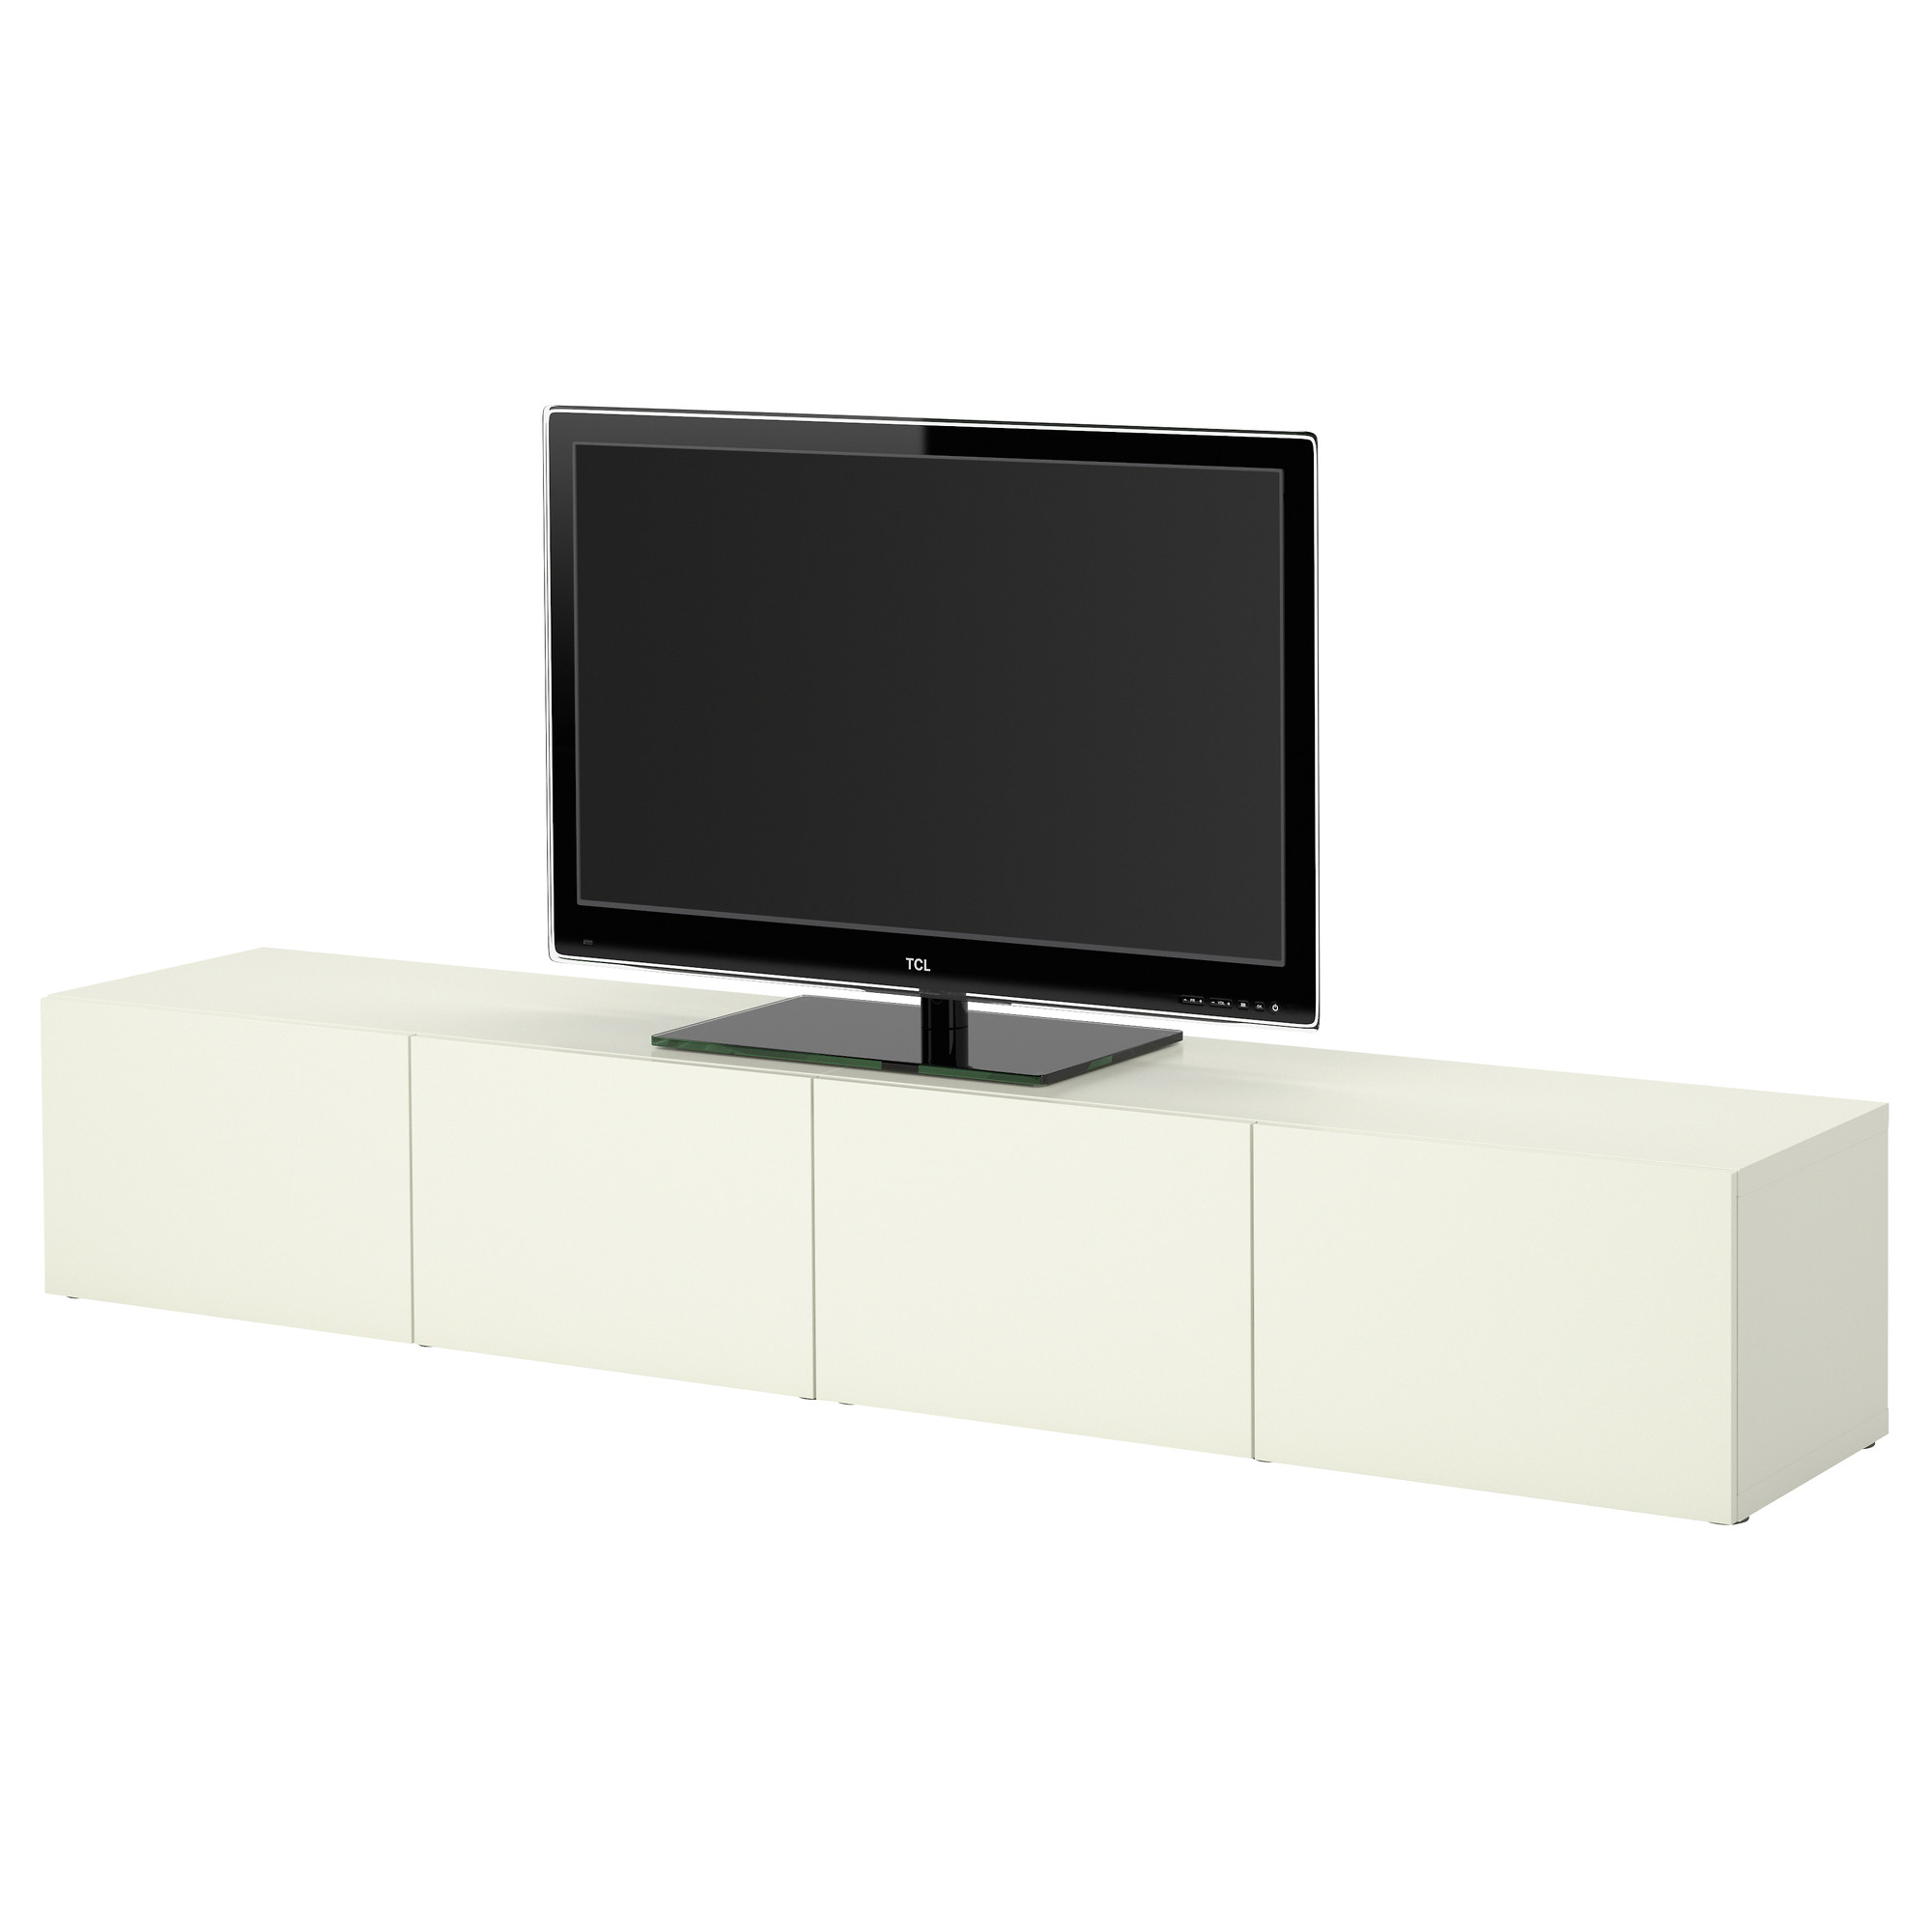 best tv storage combination ikea from ikea. Black Bedroom Furniture Sets. Home Design Ideas